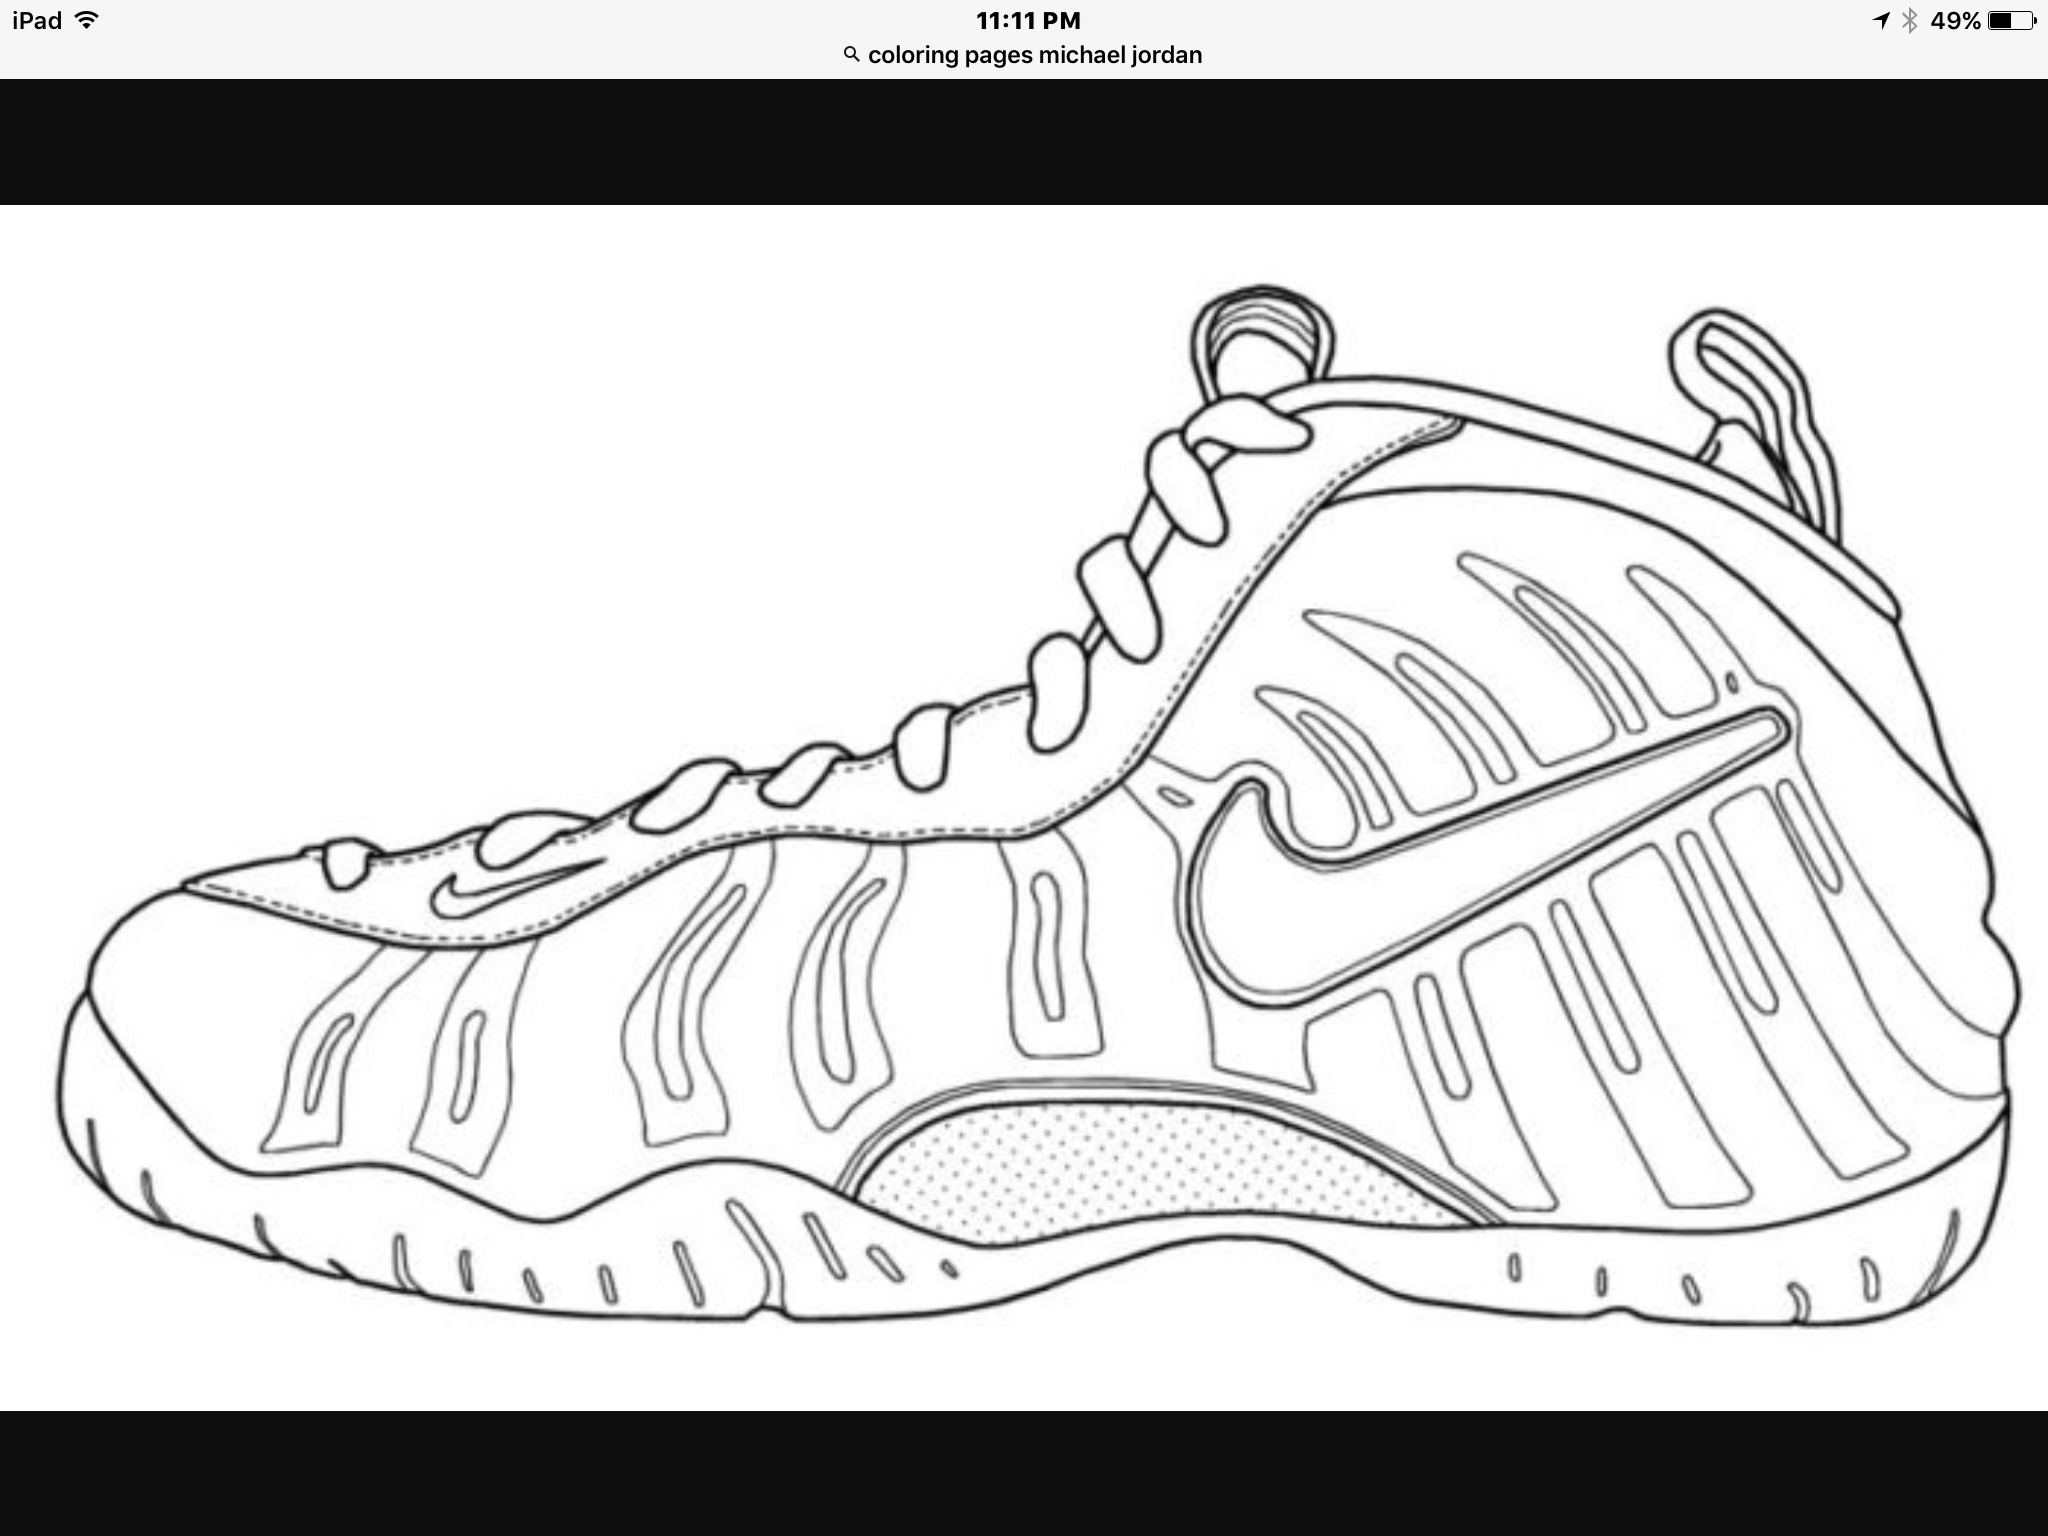 Nike Air Foamposite Coloring Page Template